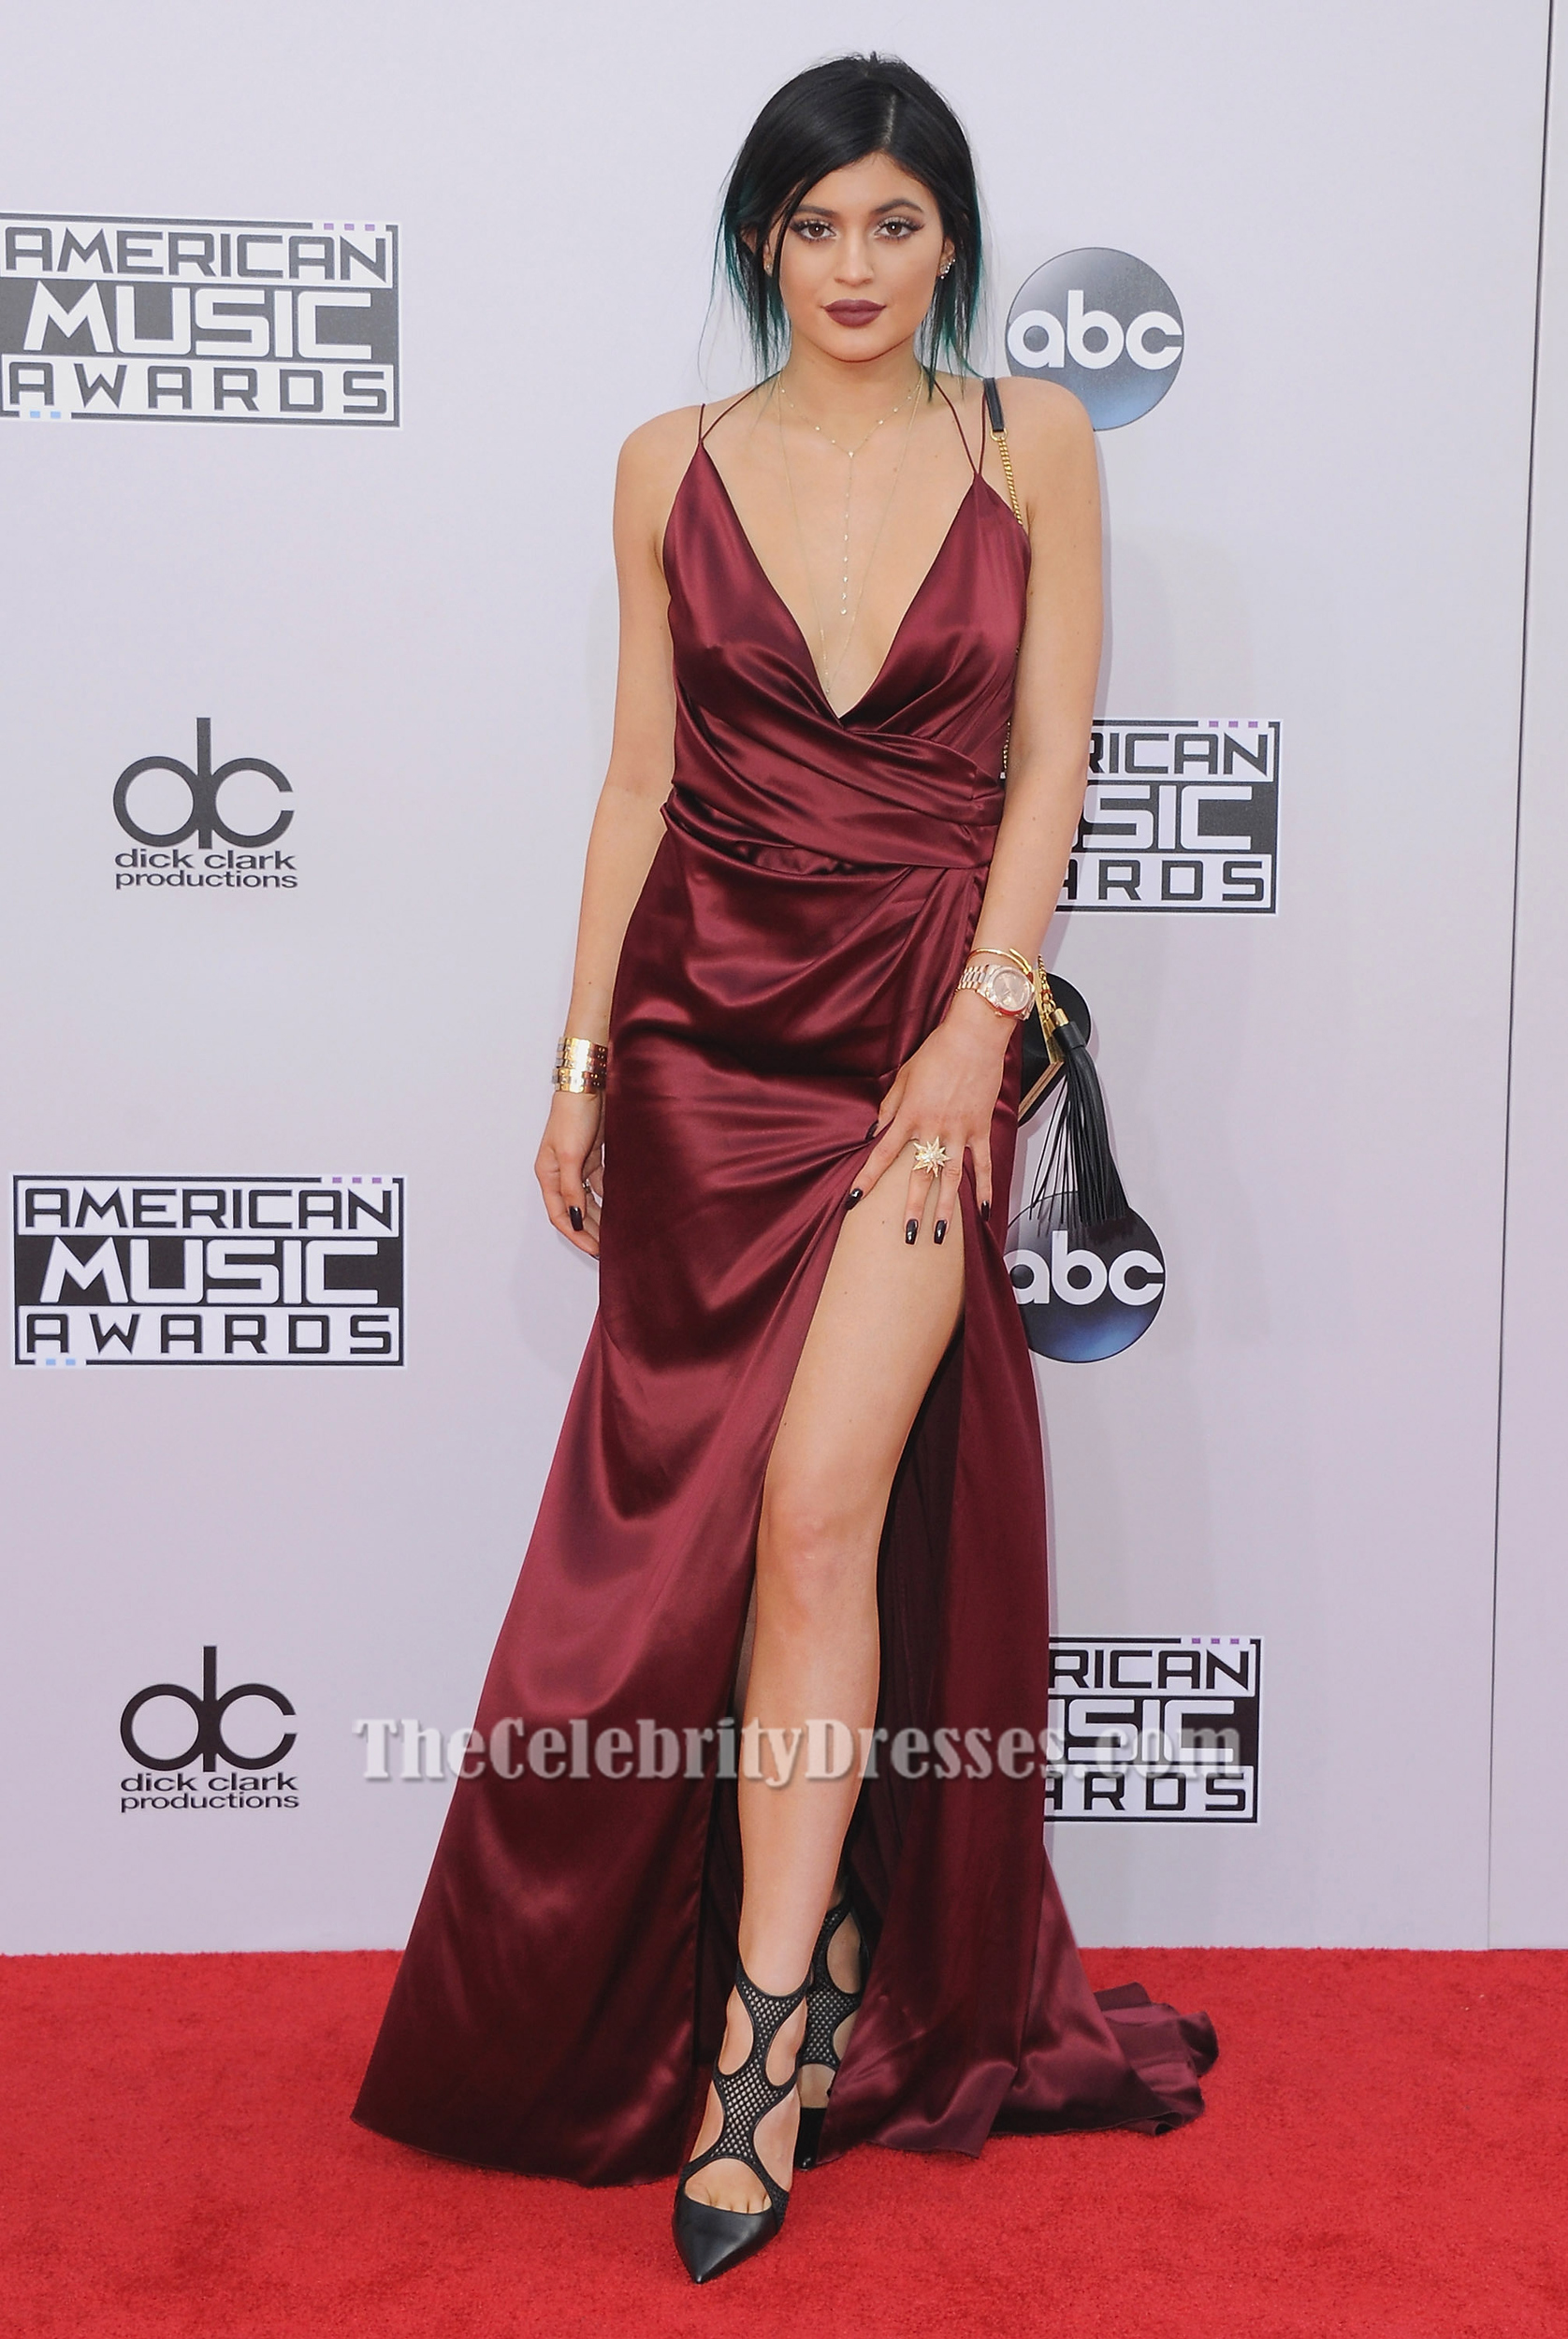 b73bad52546 Kylie Jenner American Music Awards 2014 Red Carpet Burgundy Evening Dress  For Less TS6032